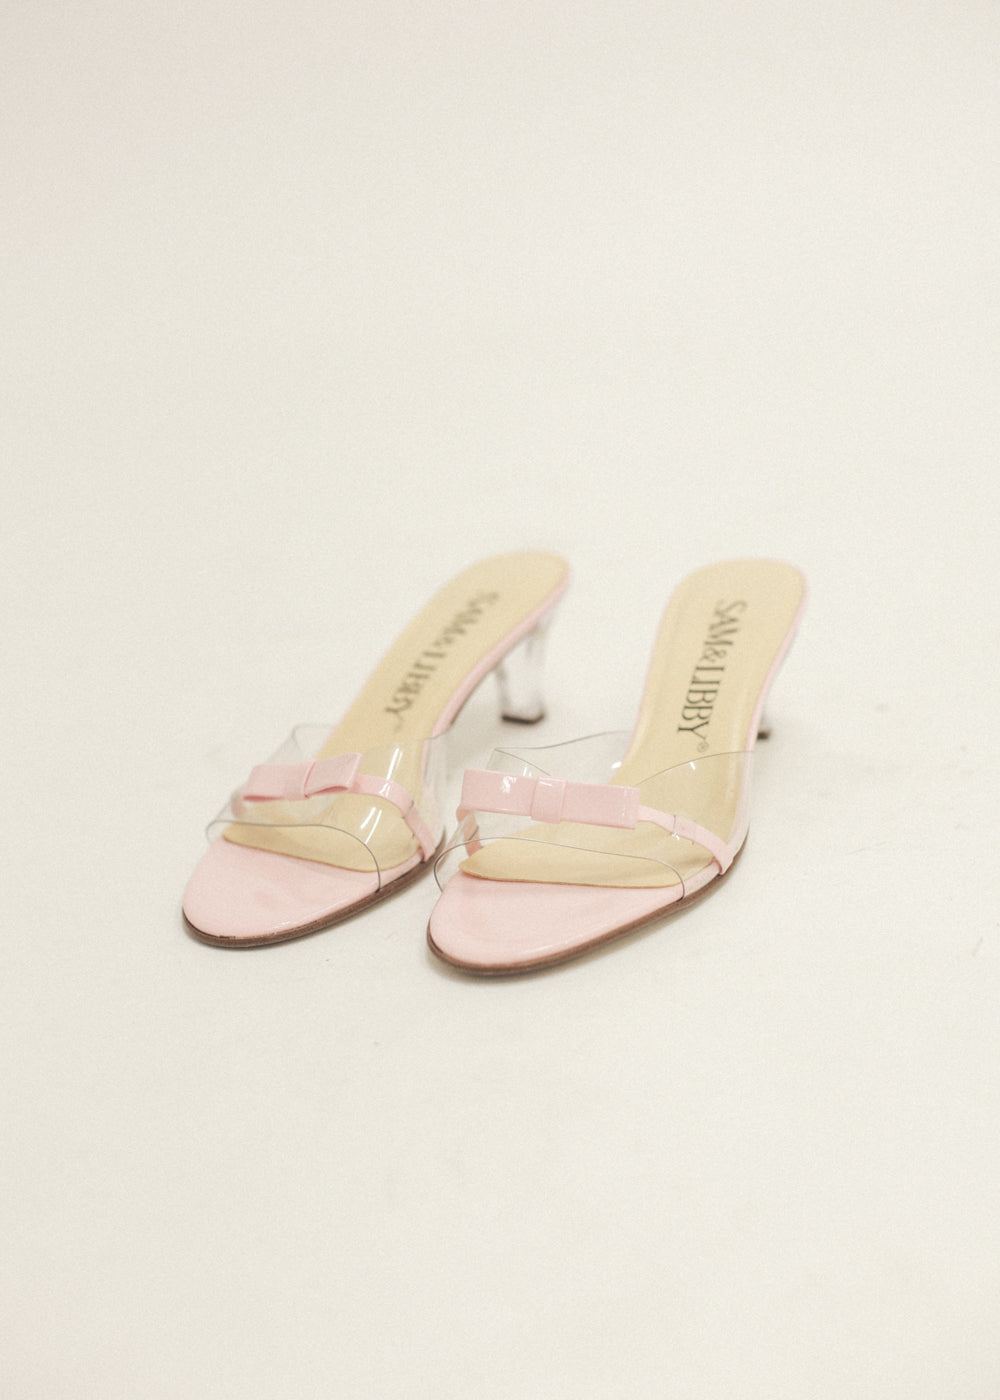 Pre by New Classics Pre-Loved Pink/Clear Bow Mules — Shop sustainable fashion and slow fashion at New Classics Studios